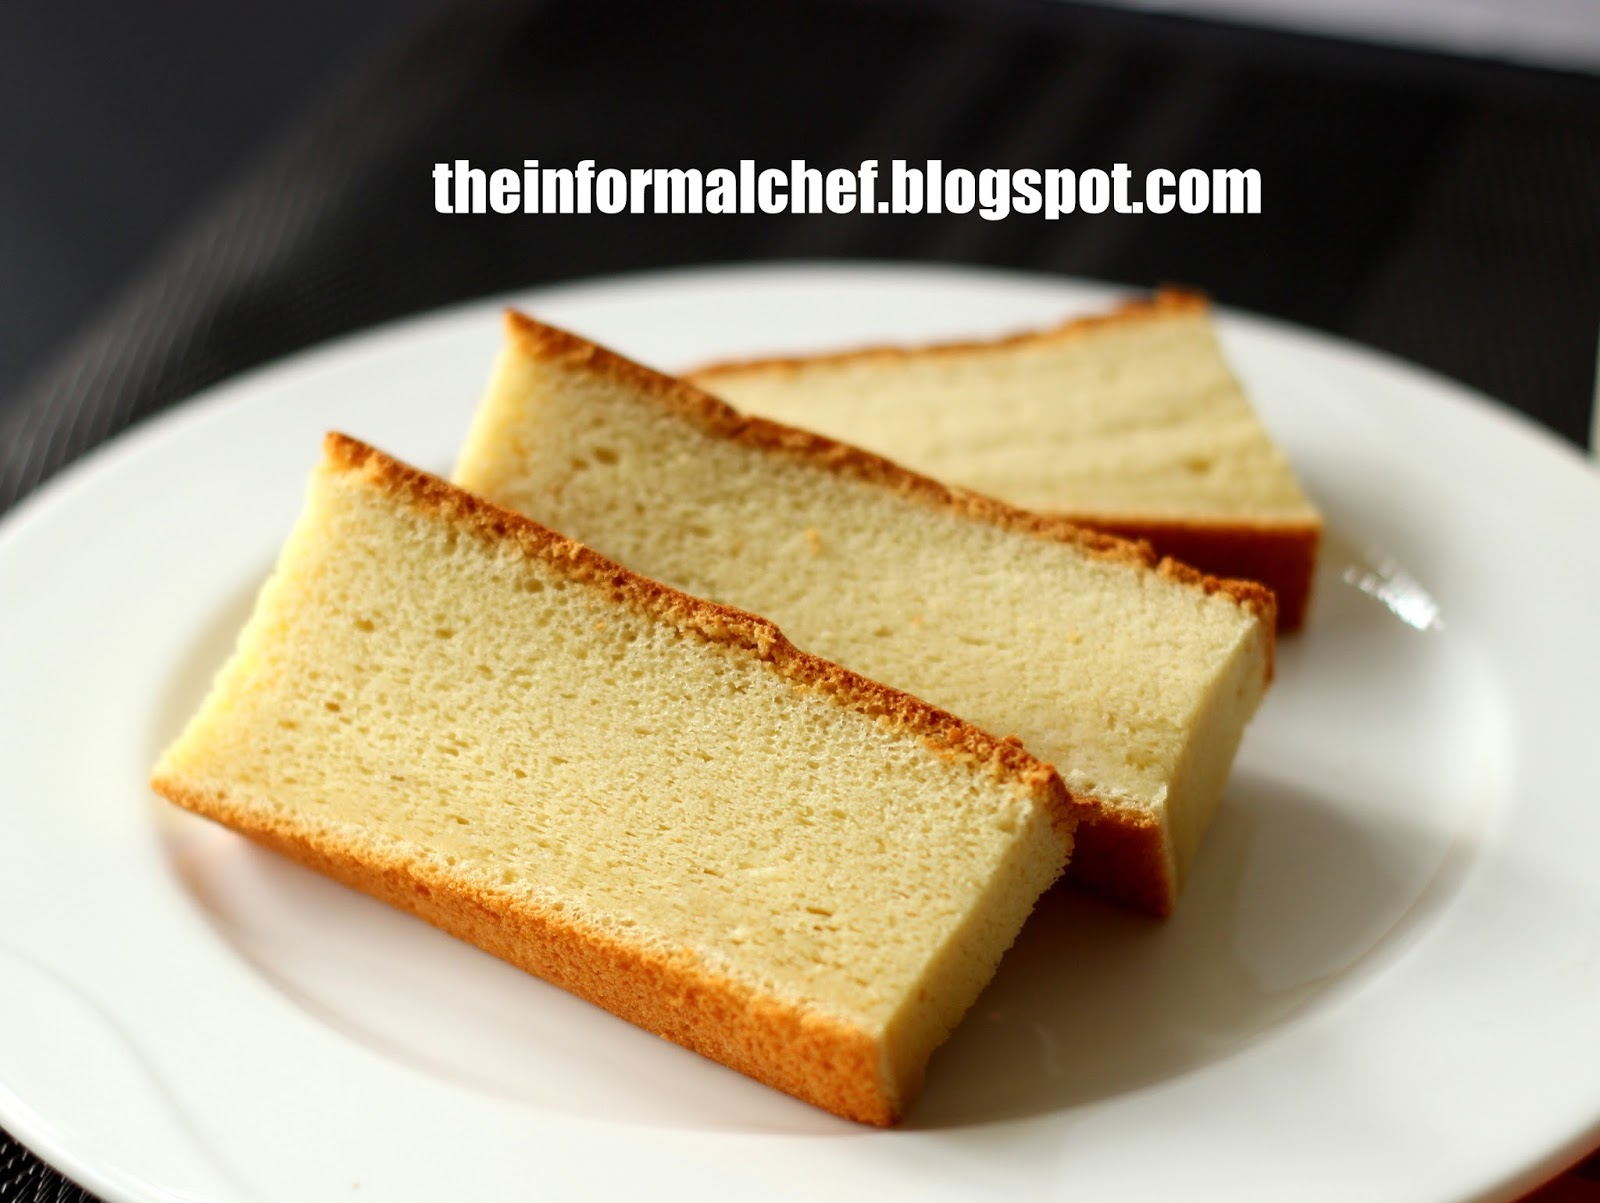 When Is A Sponge Cake Cooked